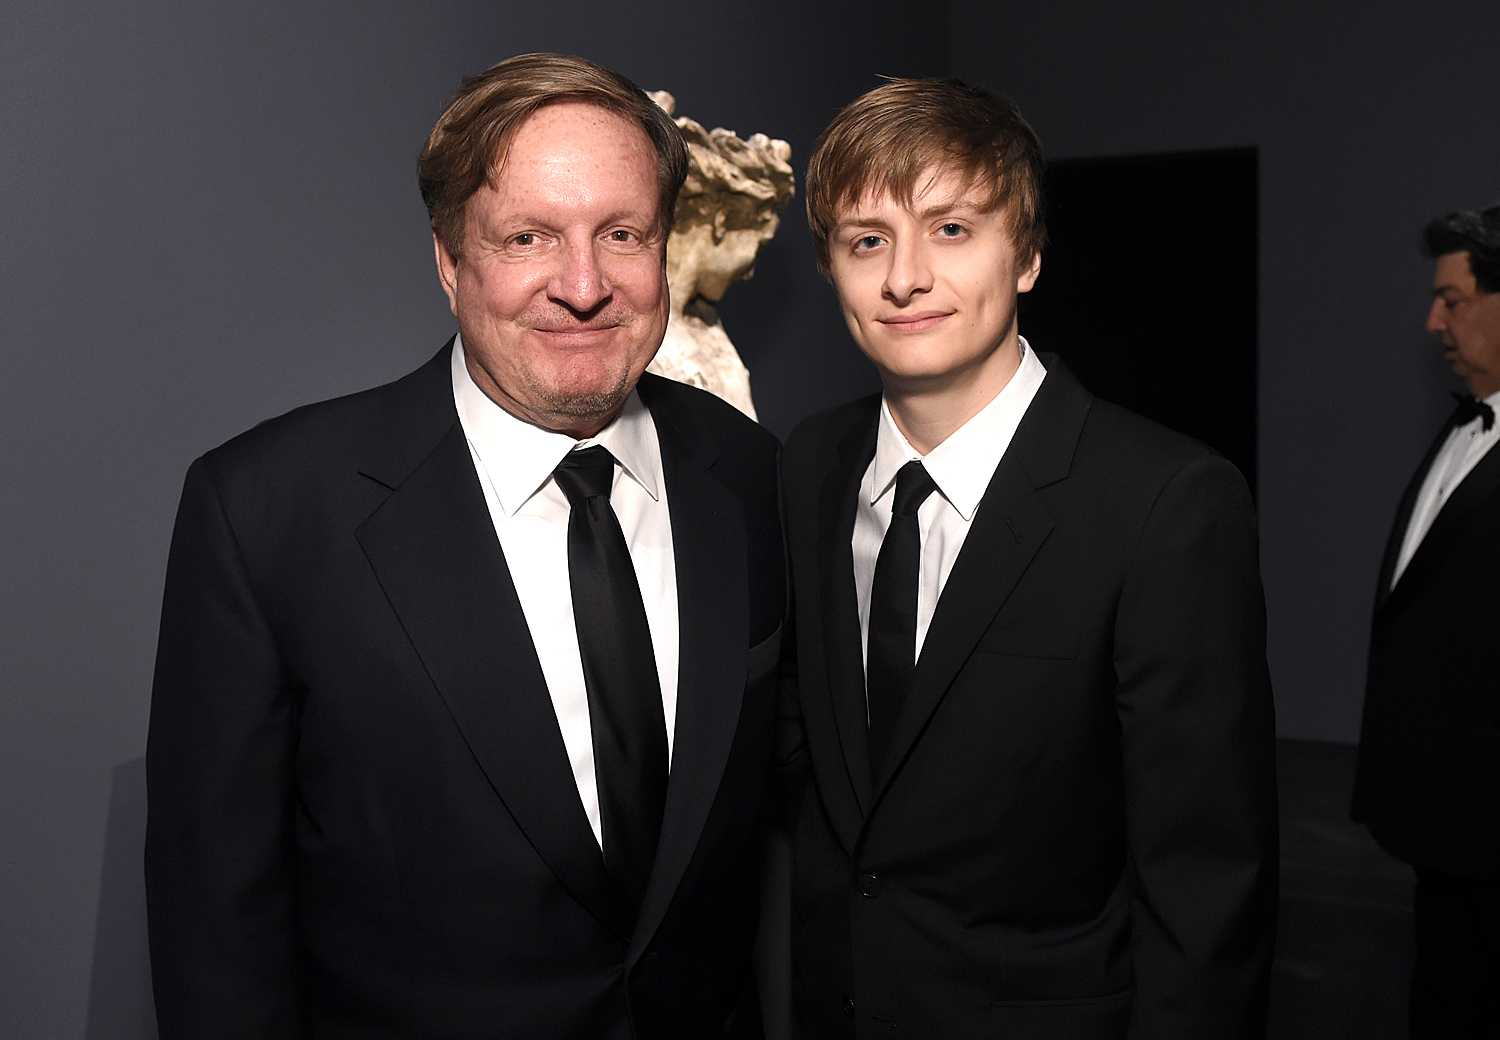 What happened to billionaire Ron Burkle's son Andrew Burkle? Dead at 27